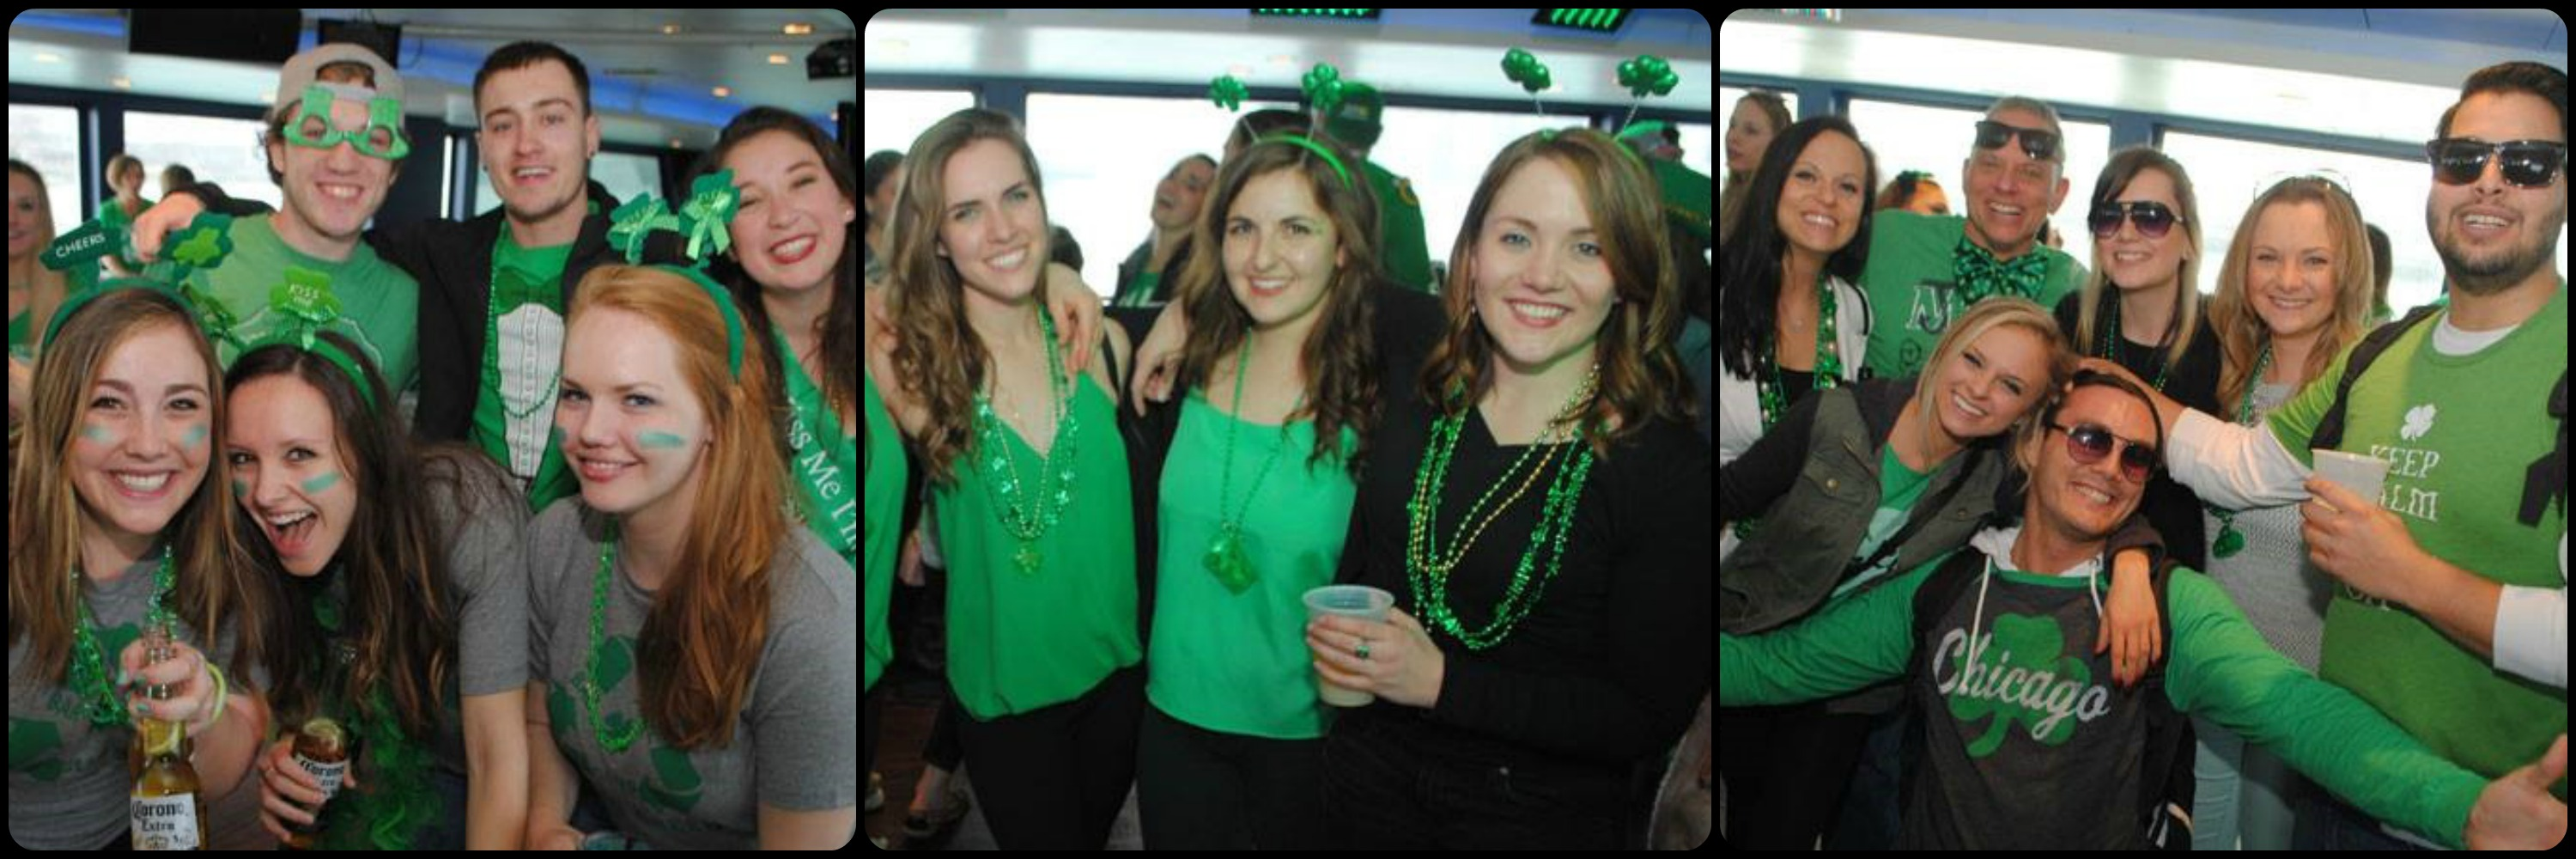 St. Patrick's Day Booze Cruise Picture Collage